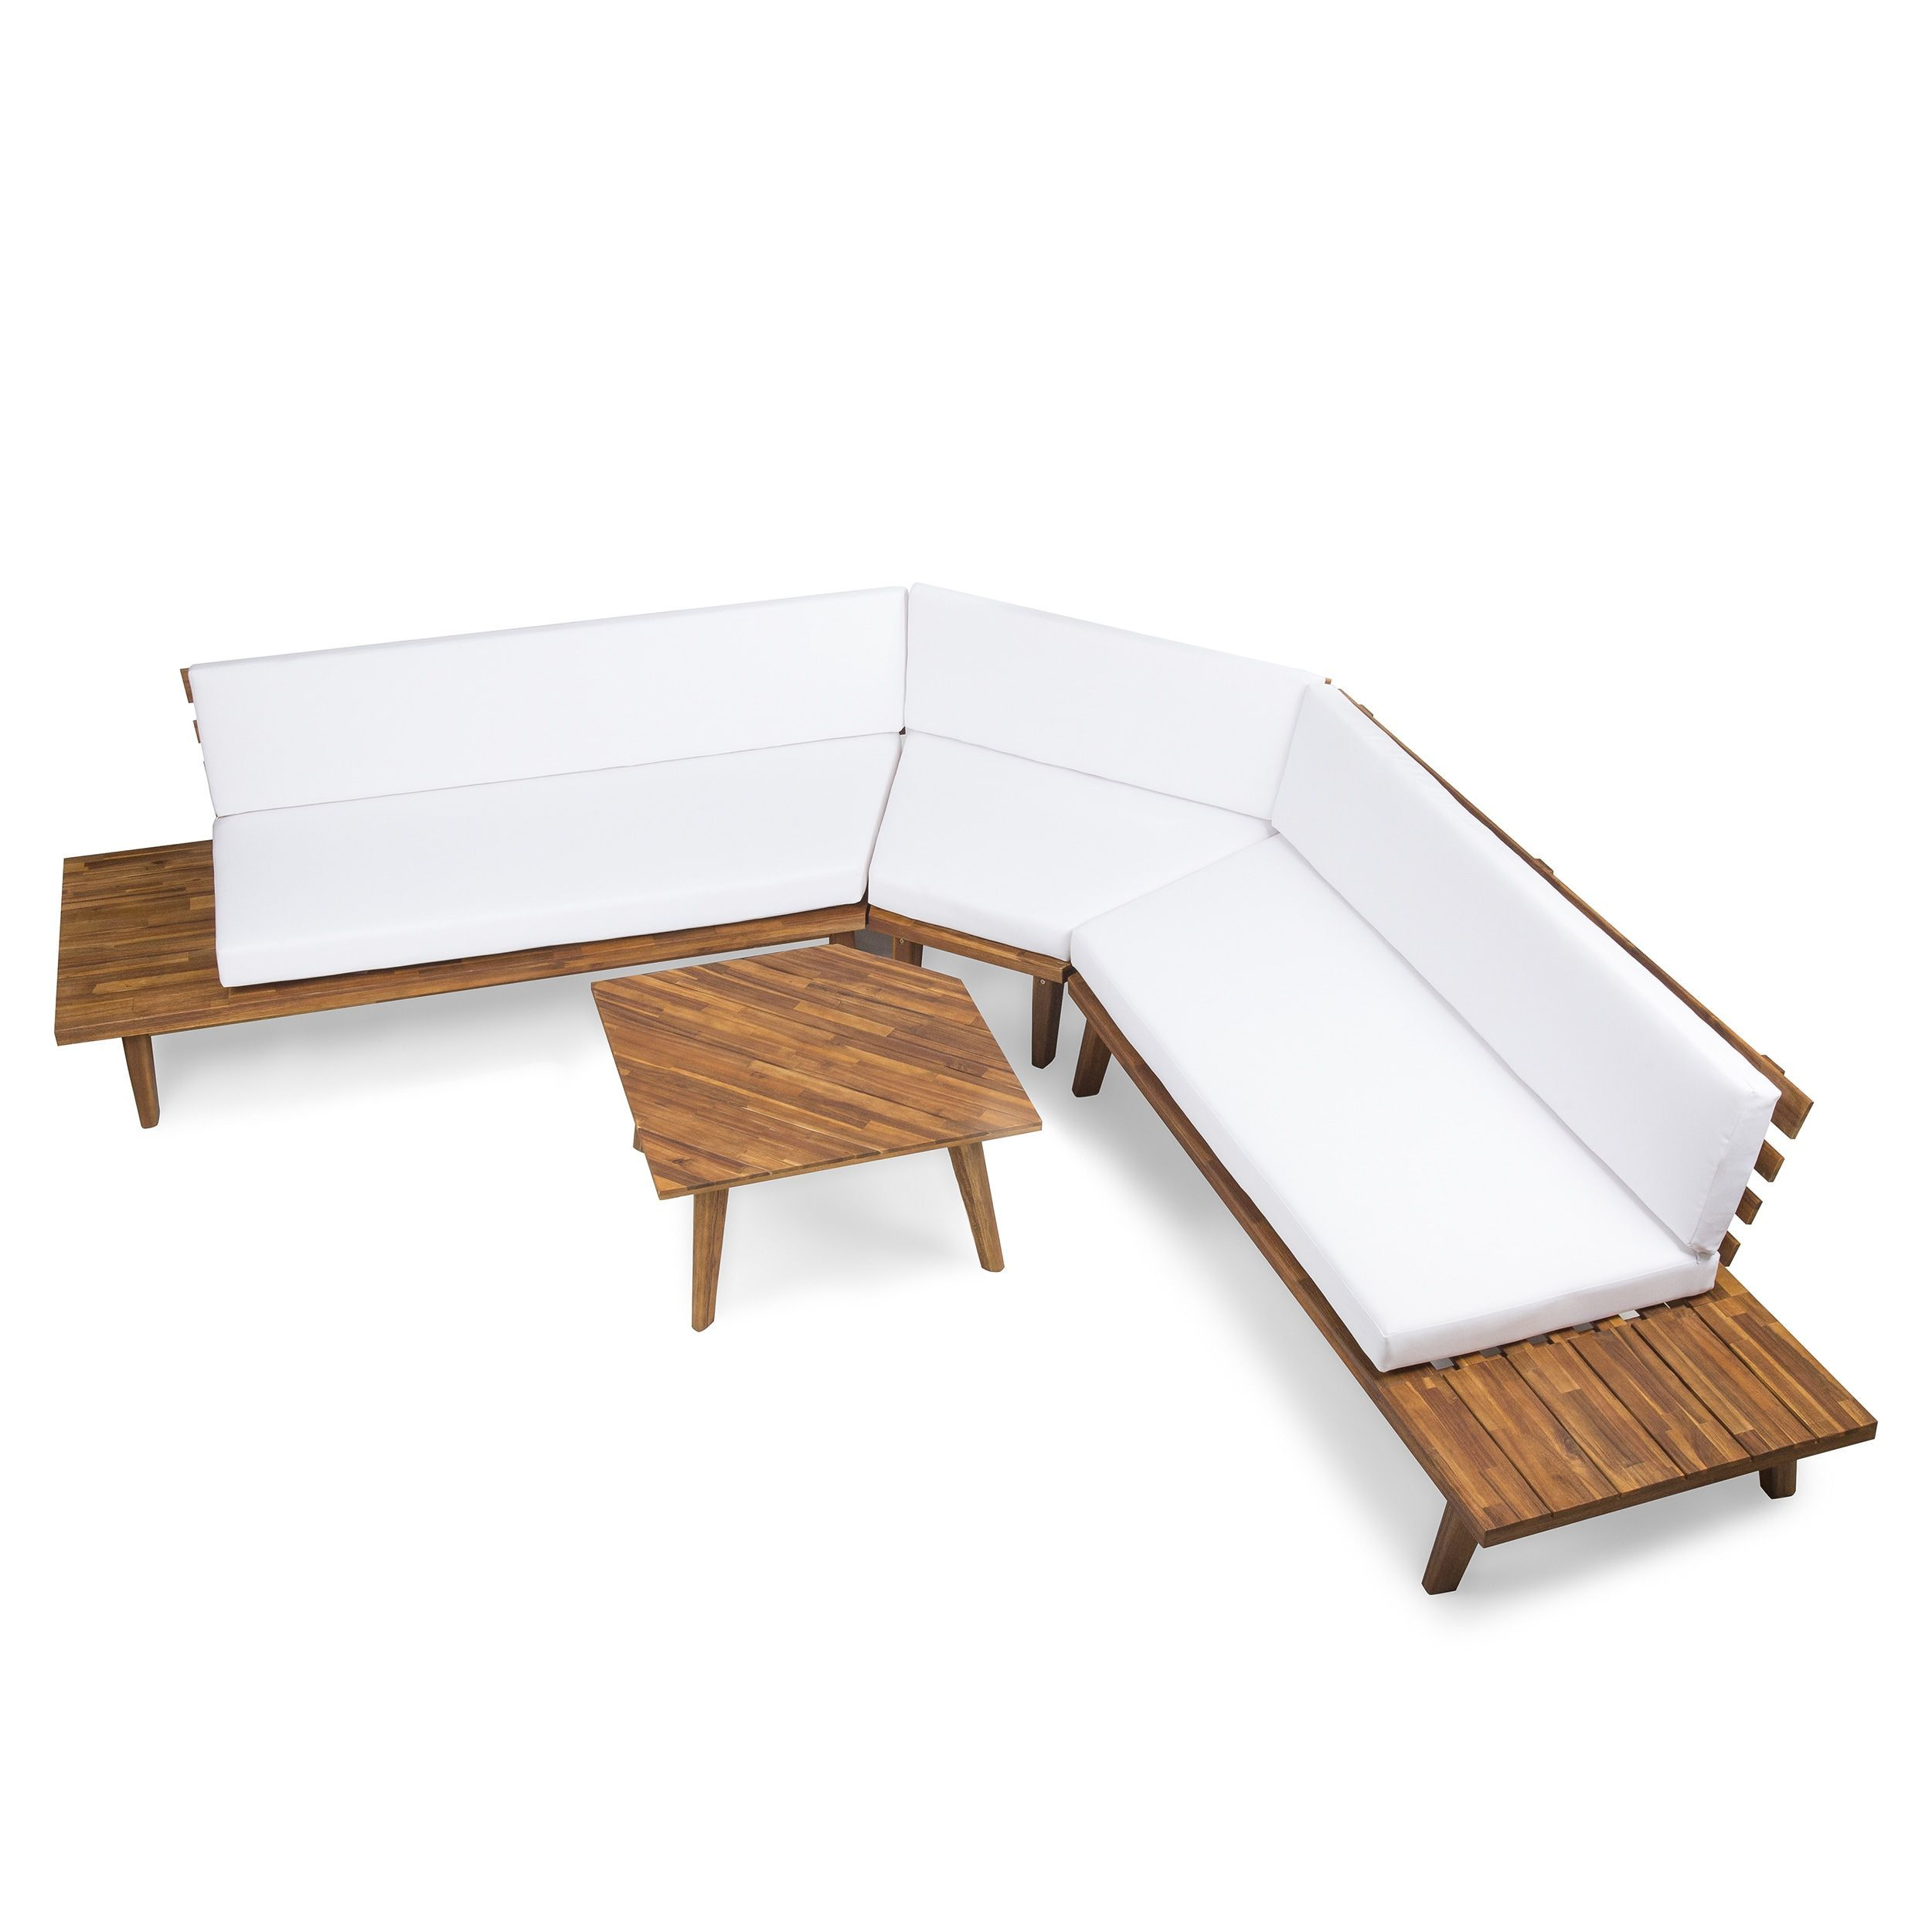 Hillcrest Outdoor 4 Piece V Shaped Wood Sectional Sofa Set With